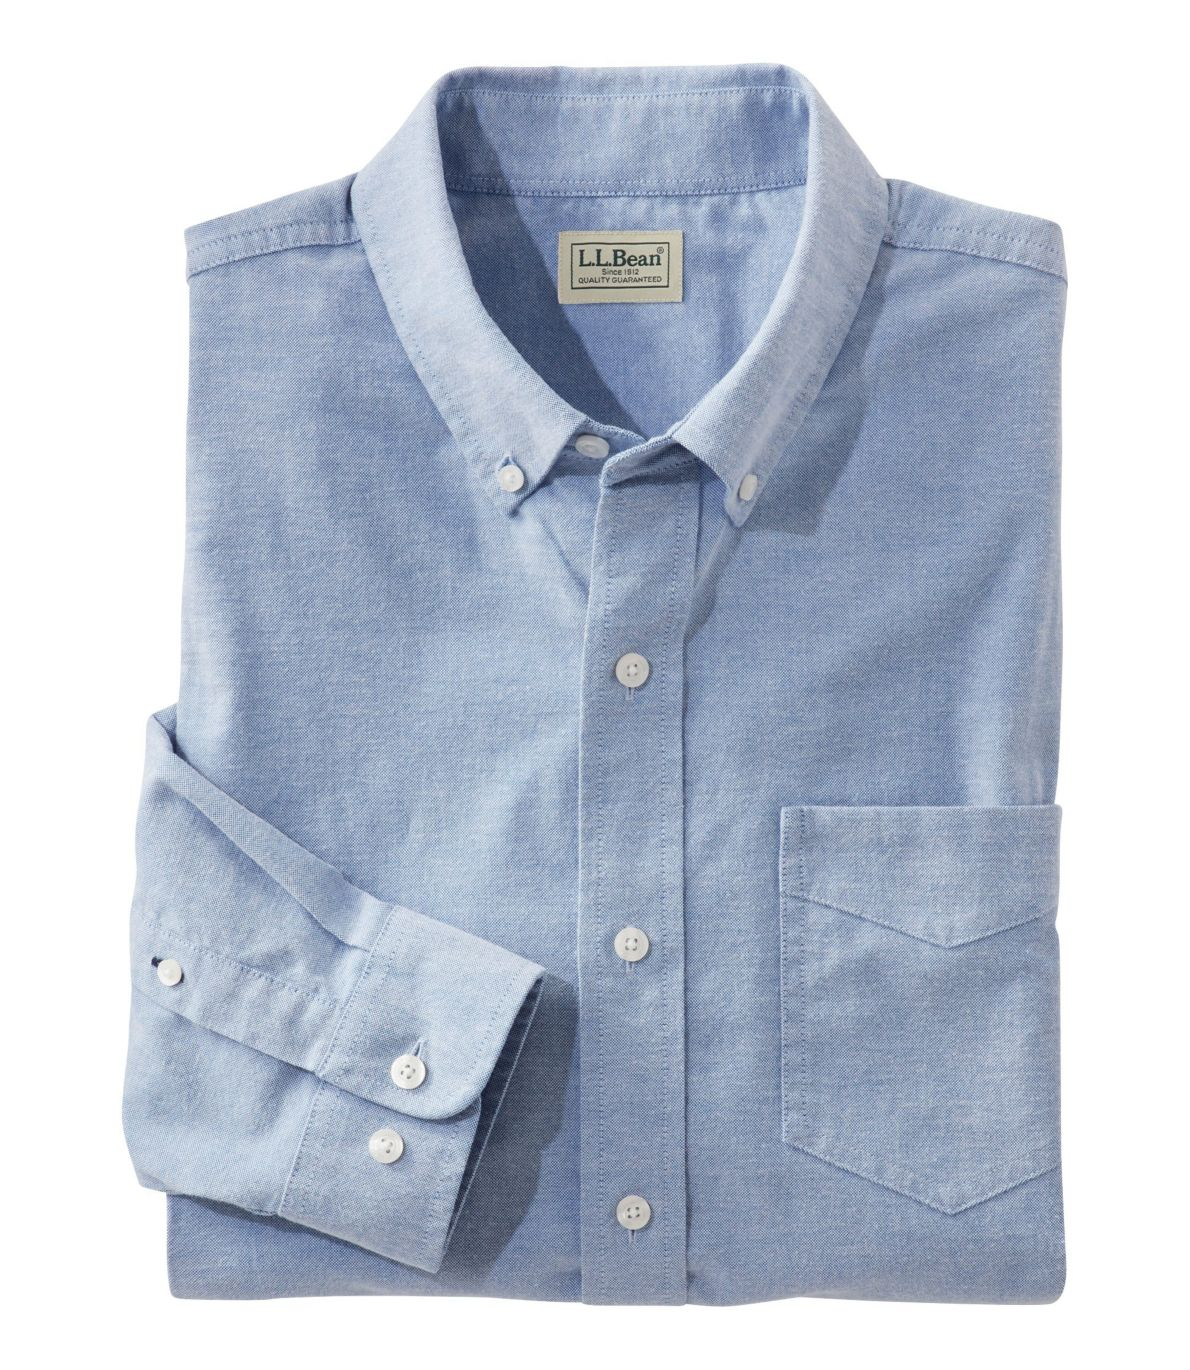 Men's Comfort Stretch Oxford Shirt, Slightly Fitted